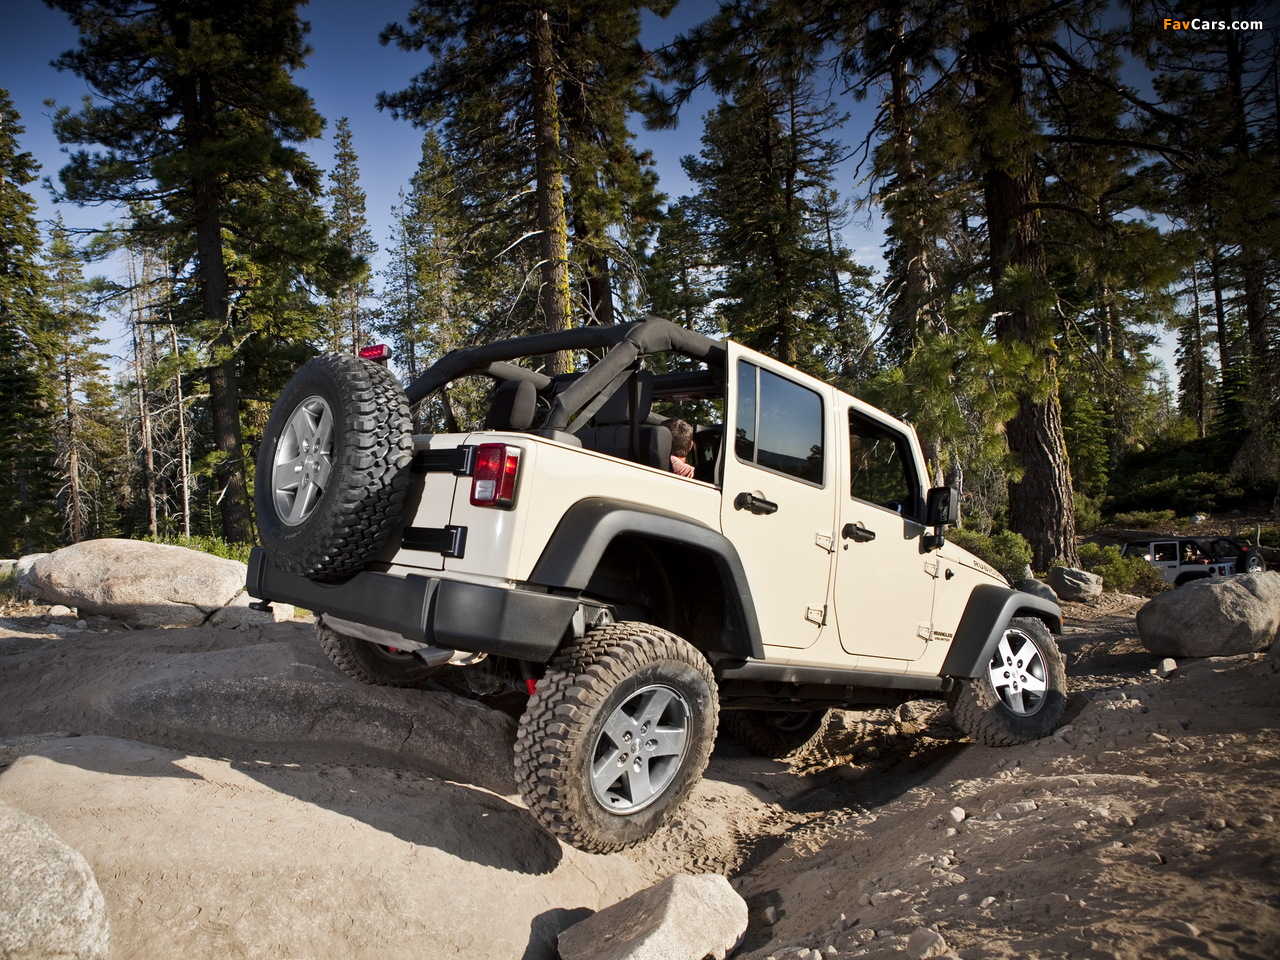 Jeep Wrangler Unlimited Rubicon (JK) 2010 pictures (1280 x 960)